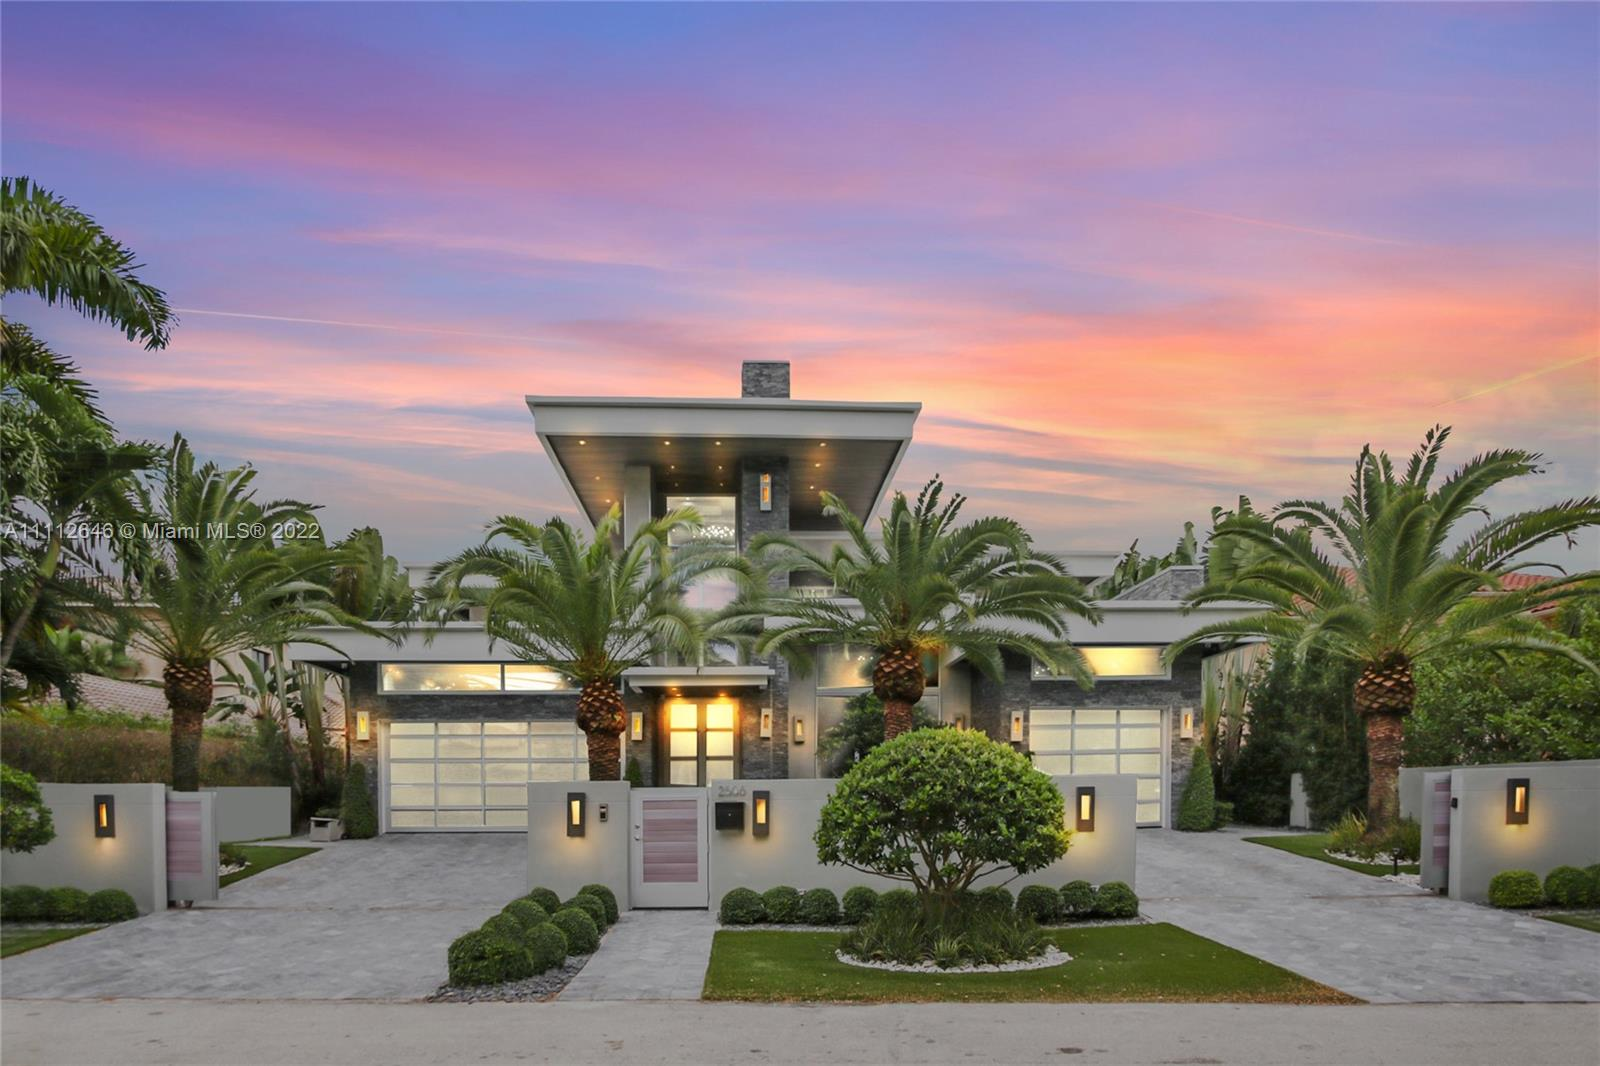 Exquisite modern estate built in 2016 on an oversized lot with 80'feet of deep water frontage. Take a sunset cruise into the Intracoastal waterway directly from your backyard where you are walking through a majestic waterfall resort style pool/terrace with full outdoor summer kitchen.  All concrete and steel construction. Smart home features Lutron system, cameras, sound system, alarm and intercom throughout the home.  Captivating grand kitchen island, top of the line Subzero and Wolf appliances. Elevator, several wine coolers, stunning office with clear see through windows to showcase your extraordinary car collection, second floor loft, 2 laundry rooms and grand 2nd floor terrace over looking the canal. Accent lighting throughout. Fantastic Las Olas Seven Isles location.